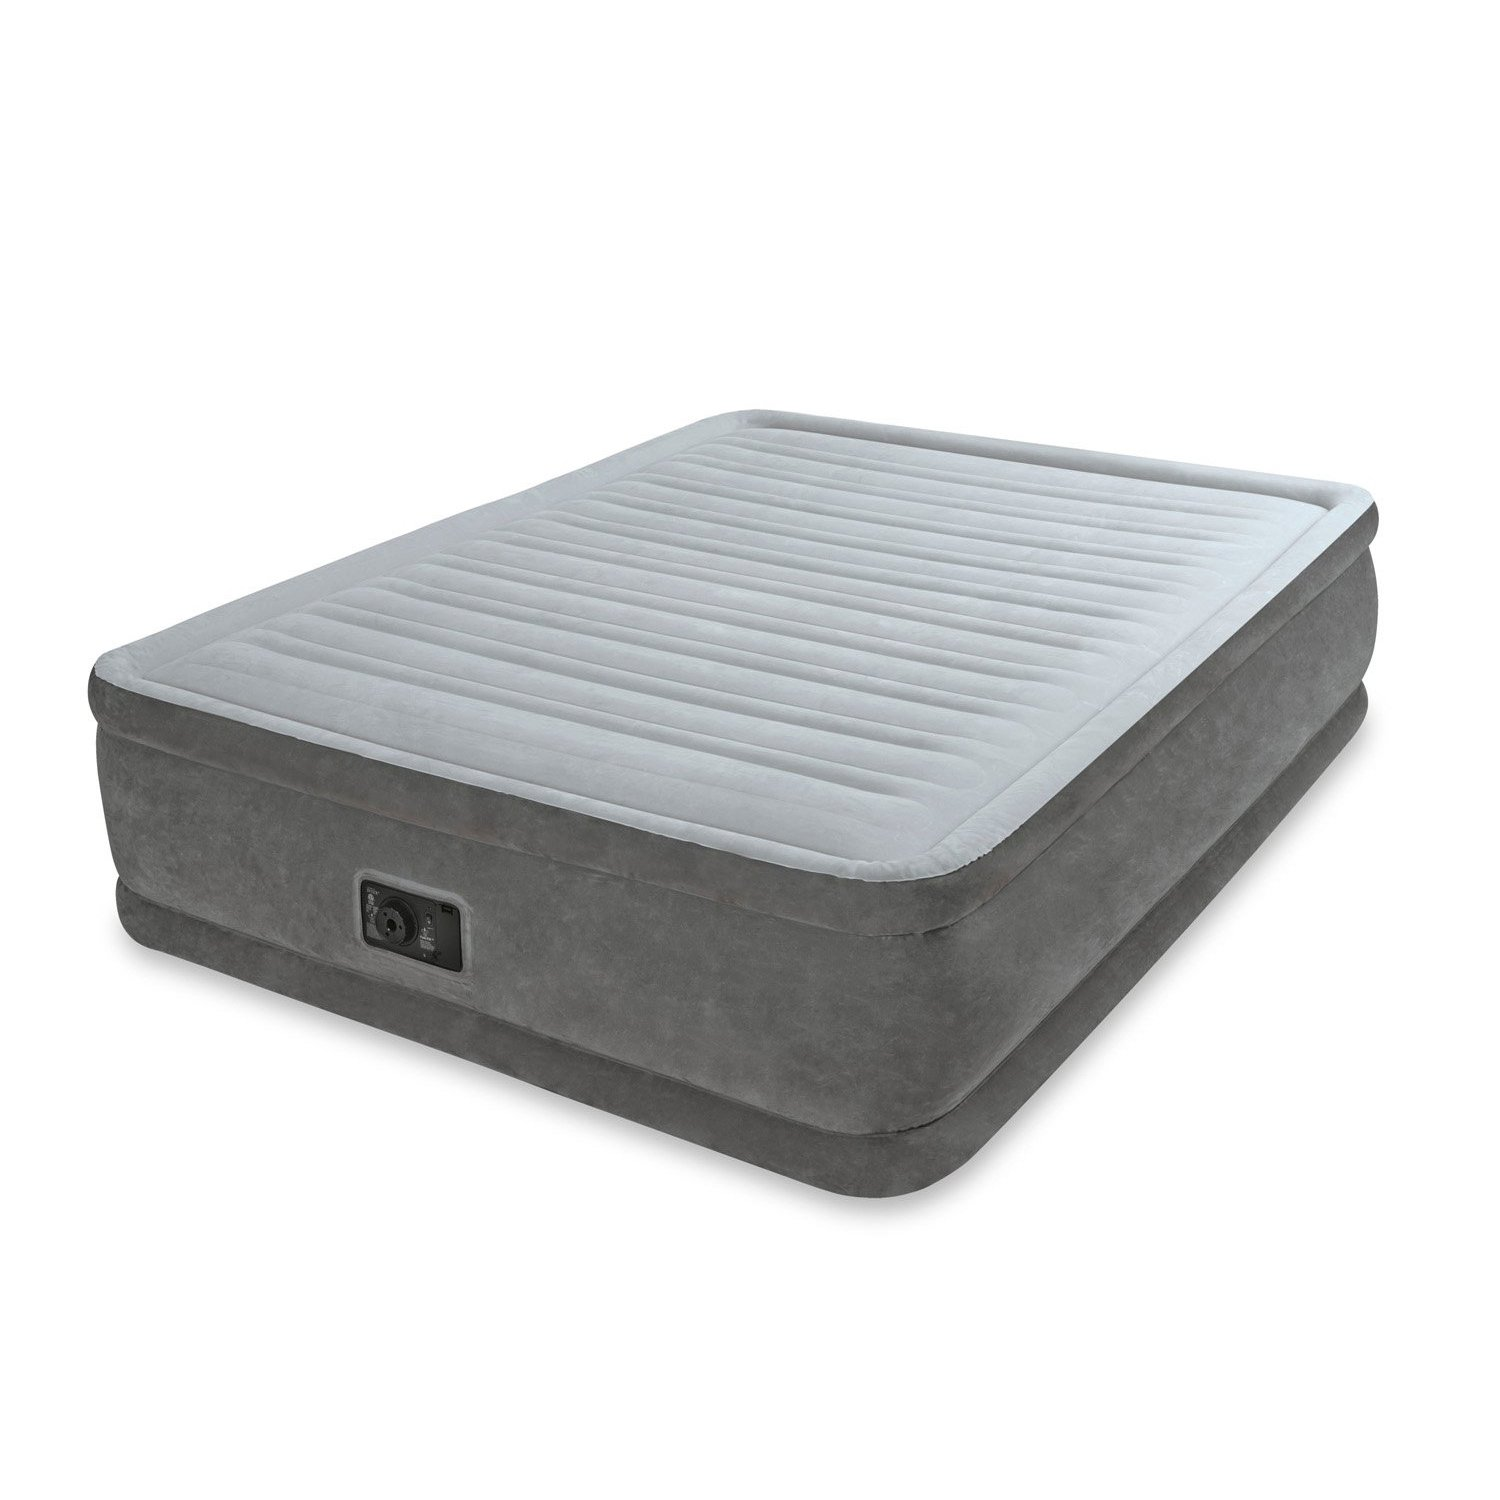 6c1327a958aea Air Mattresses   Cots for Home or Camping